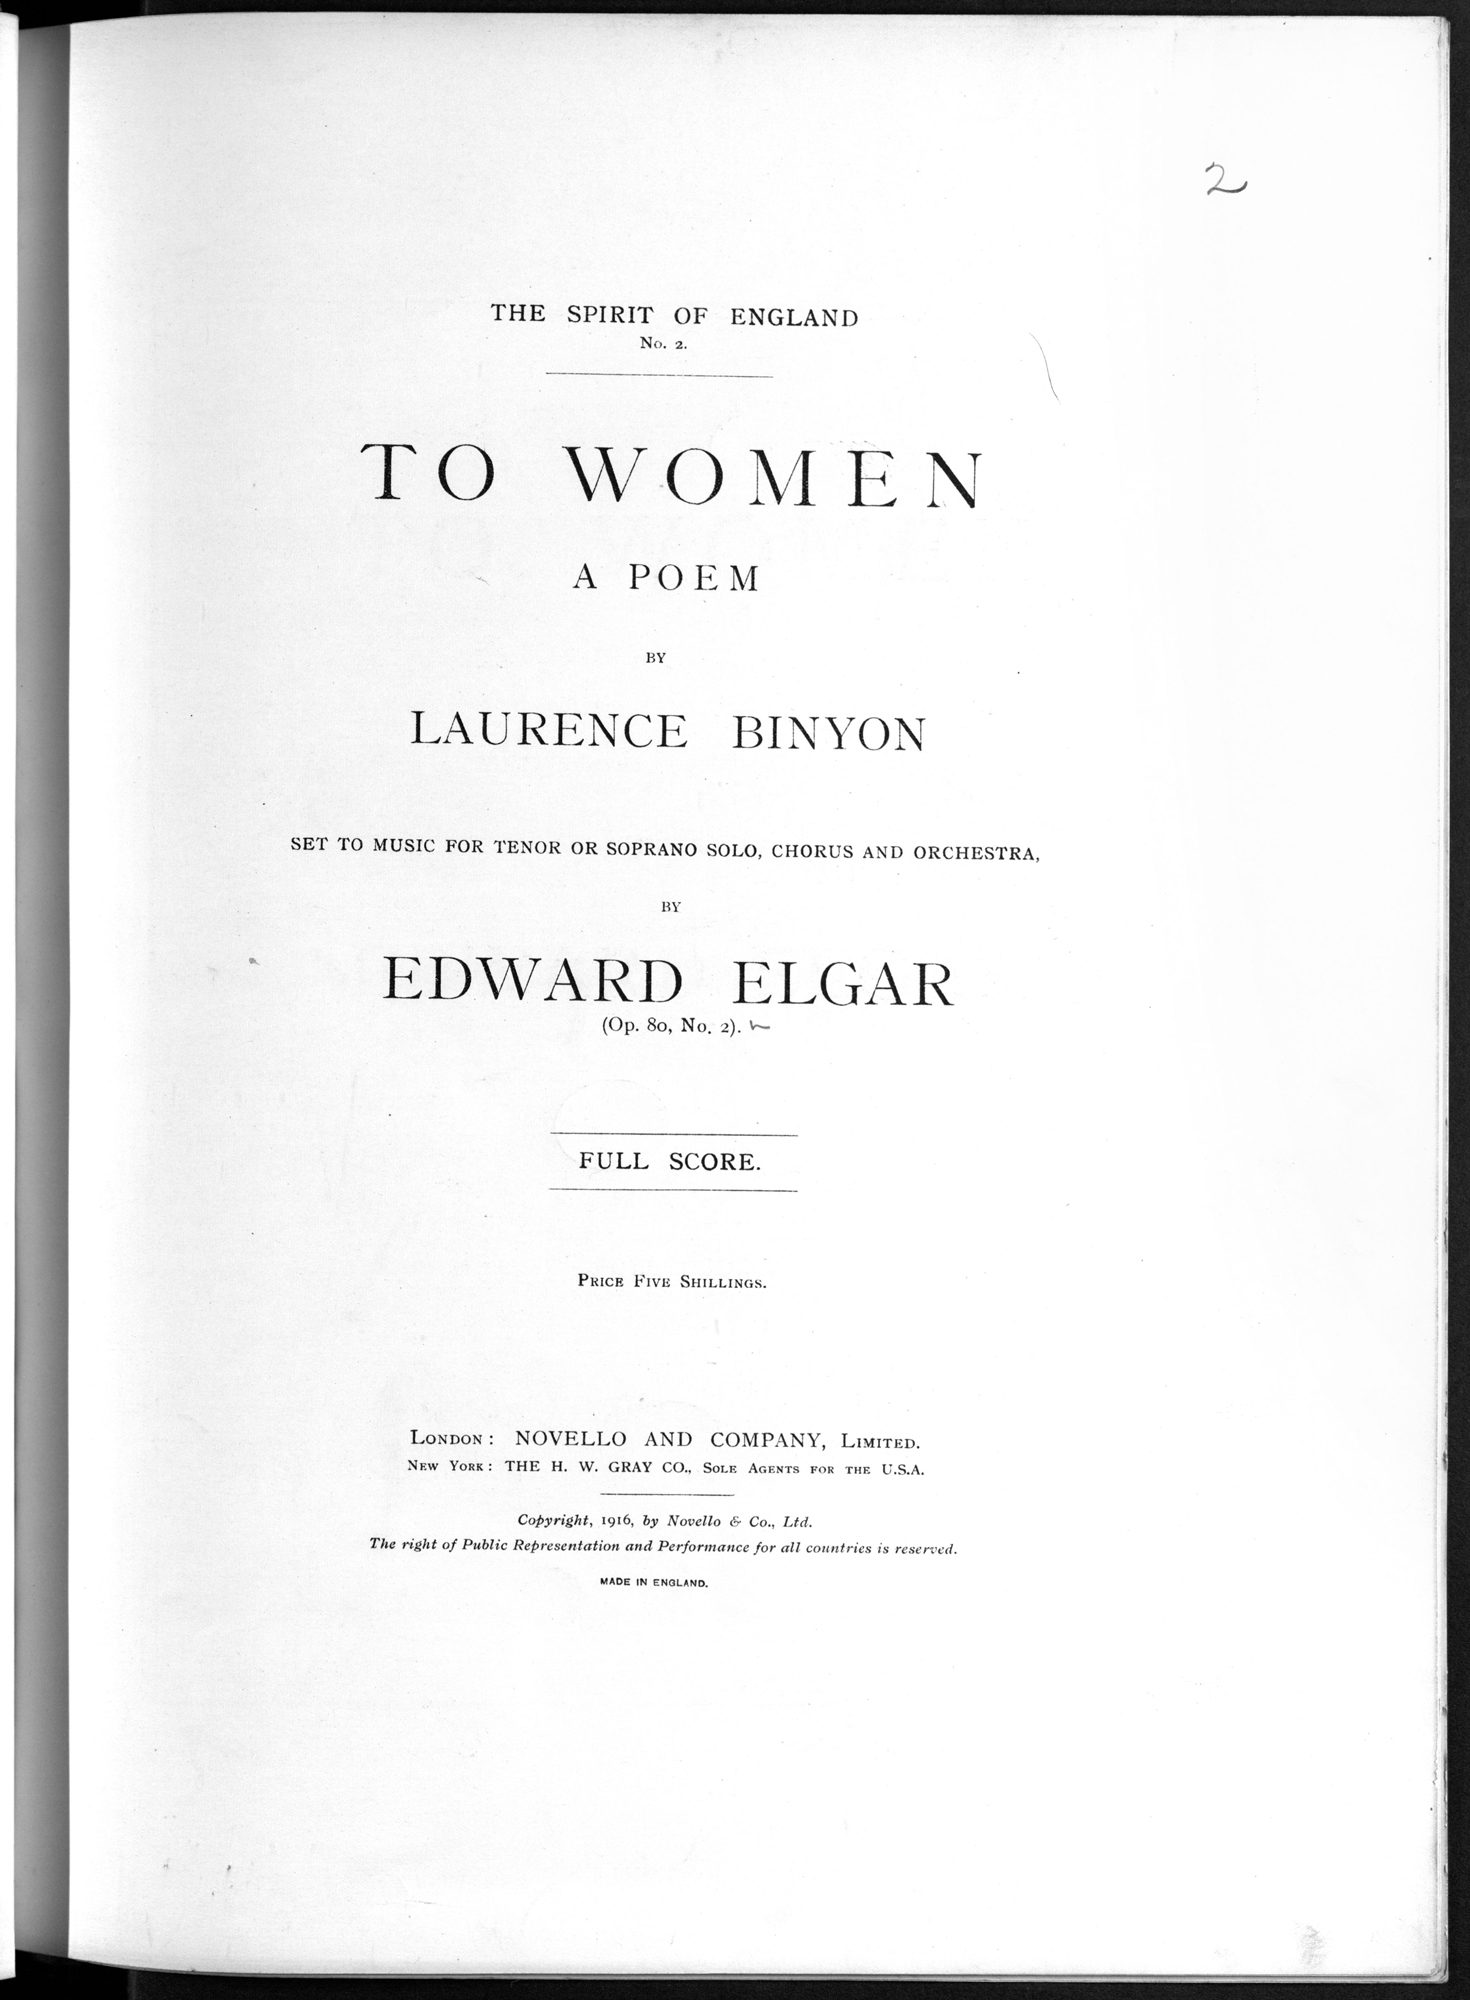 Designed to be inspirational for the nation, Elgar's The Spirit of England composed in 1916-17 was incredibly popular.